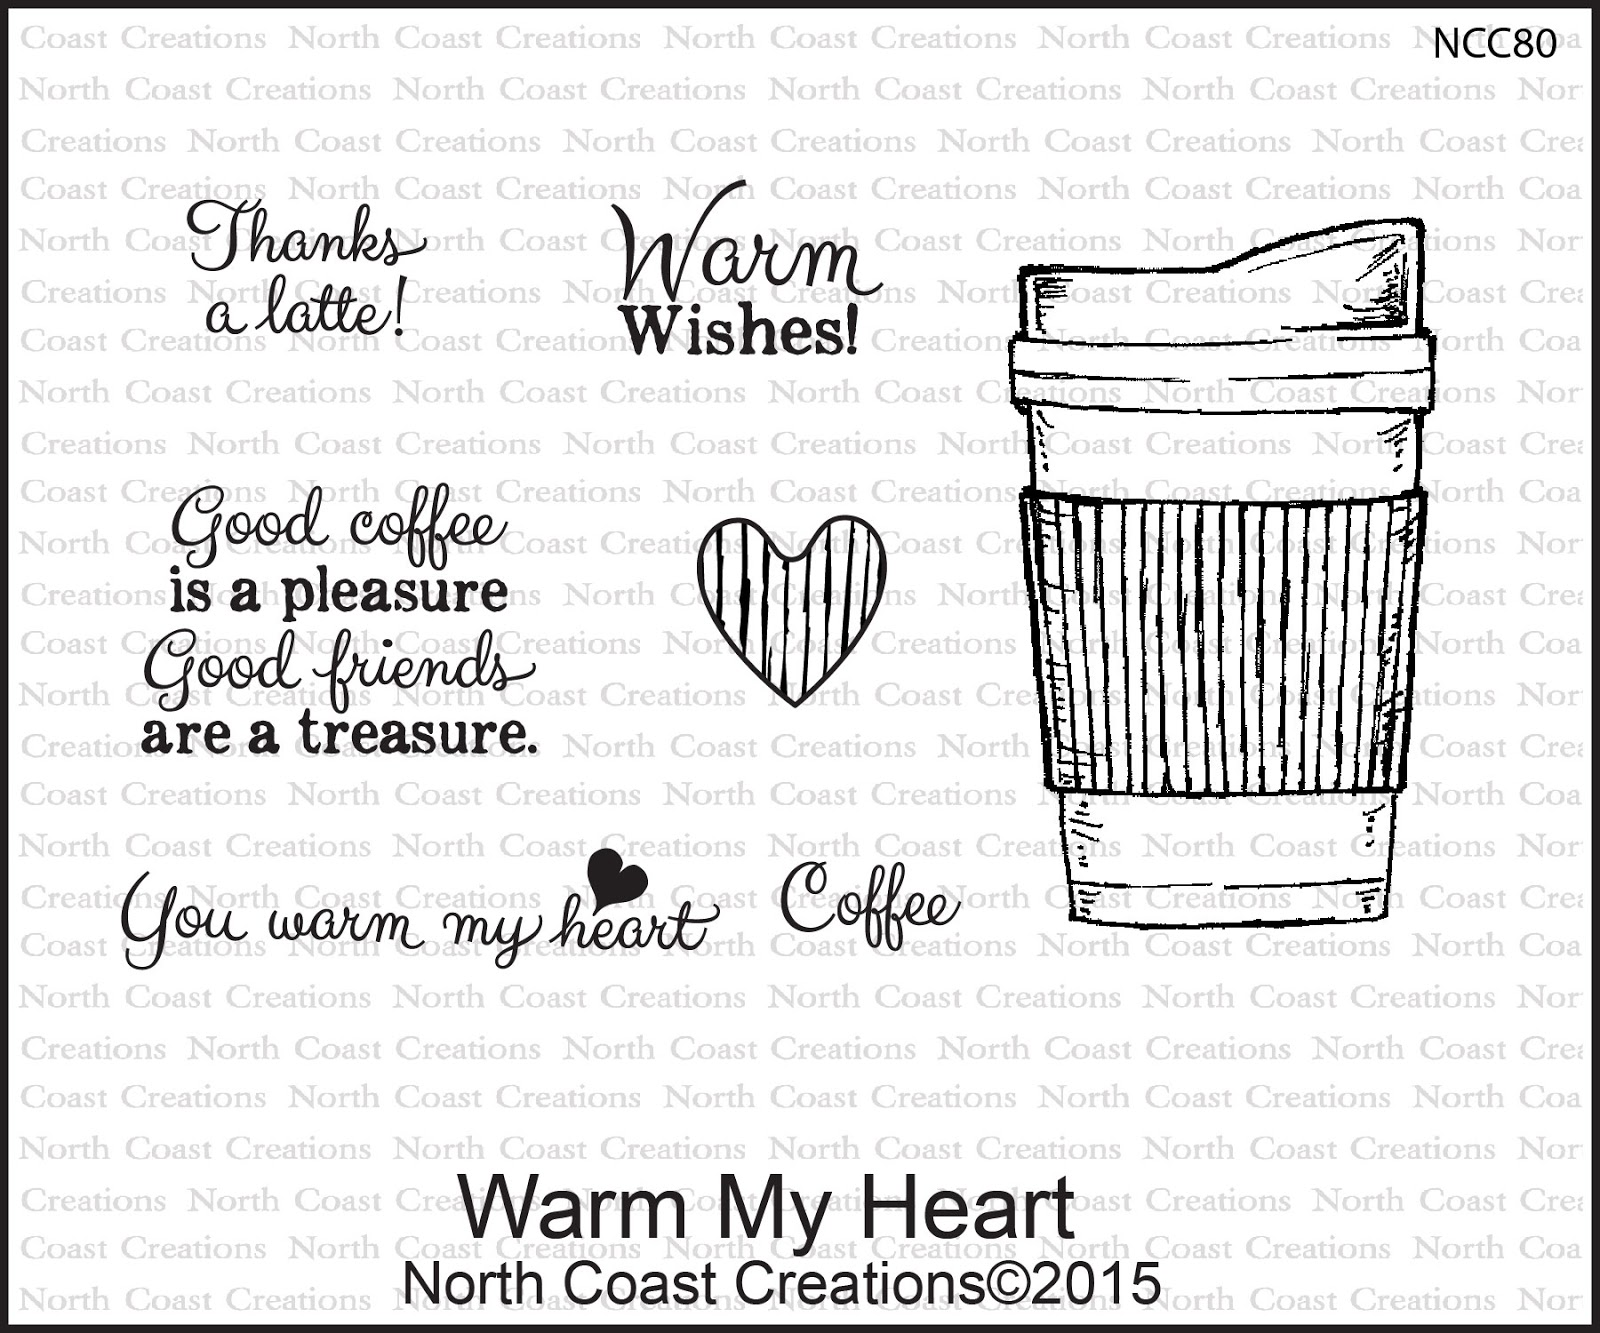 https://www.northcoastcreations.com/index.php/new-releases/2015-march/ncc80-warm-my-heart.html